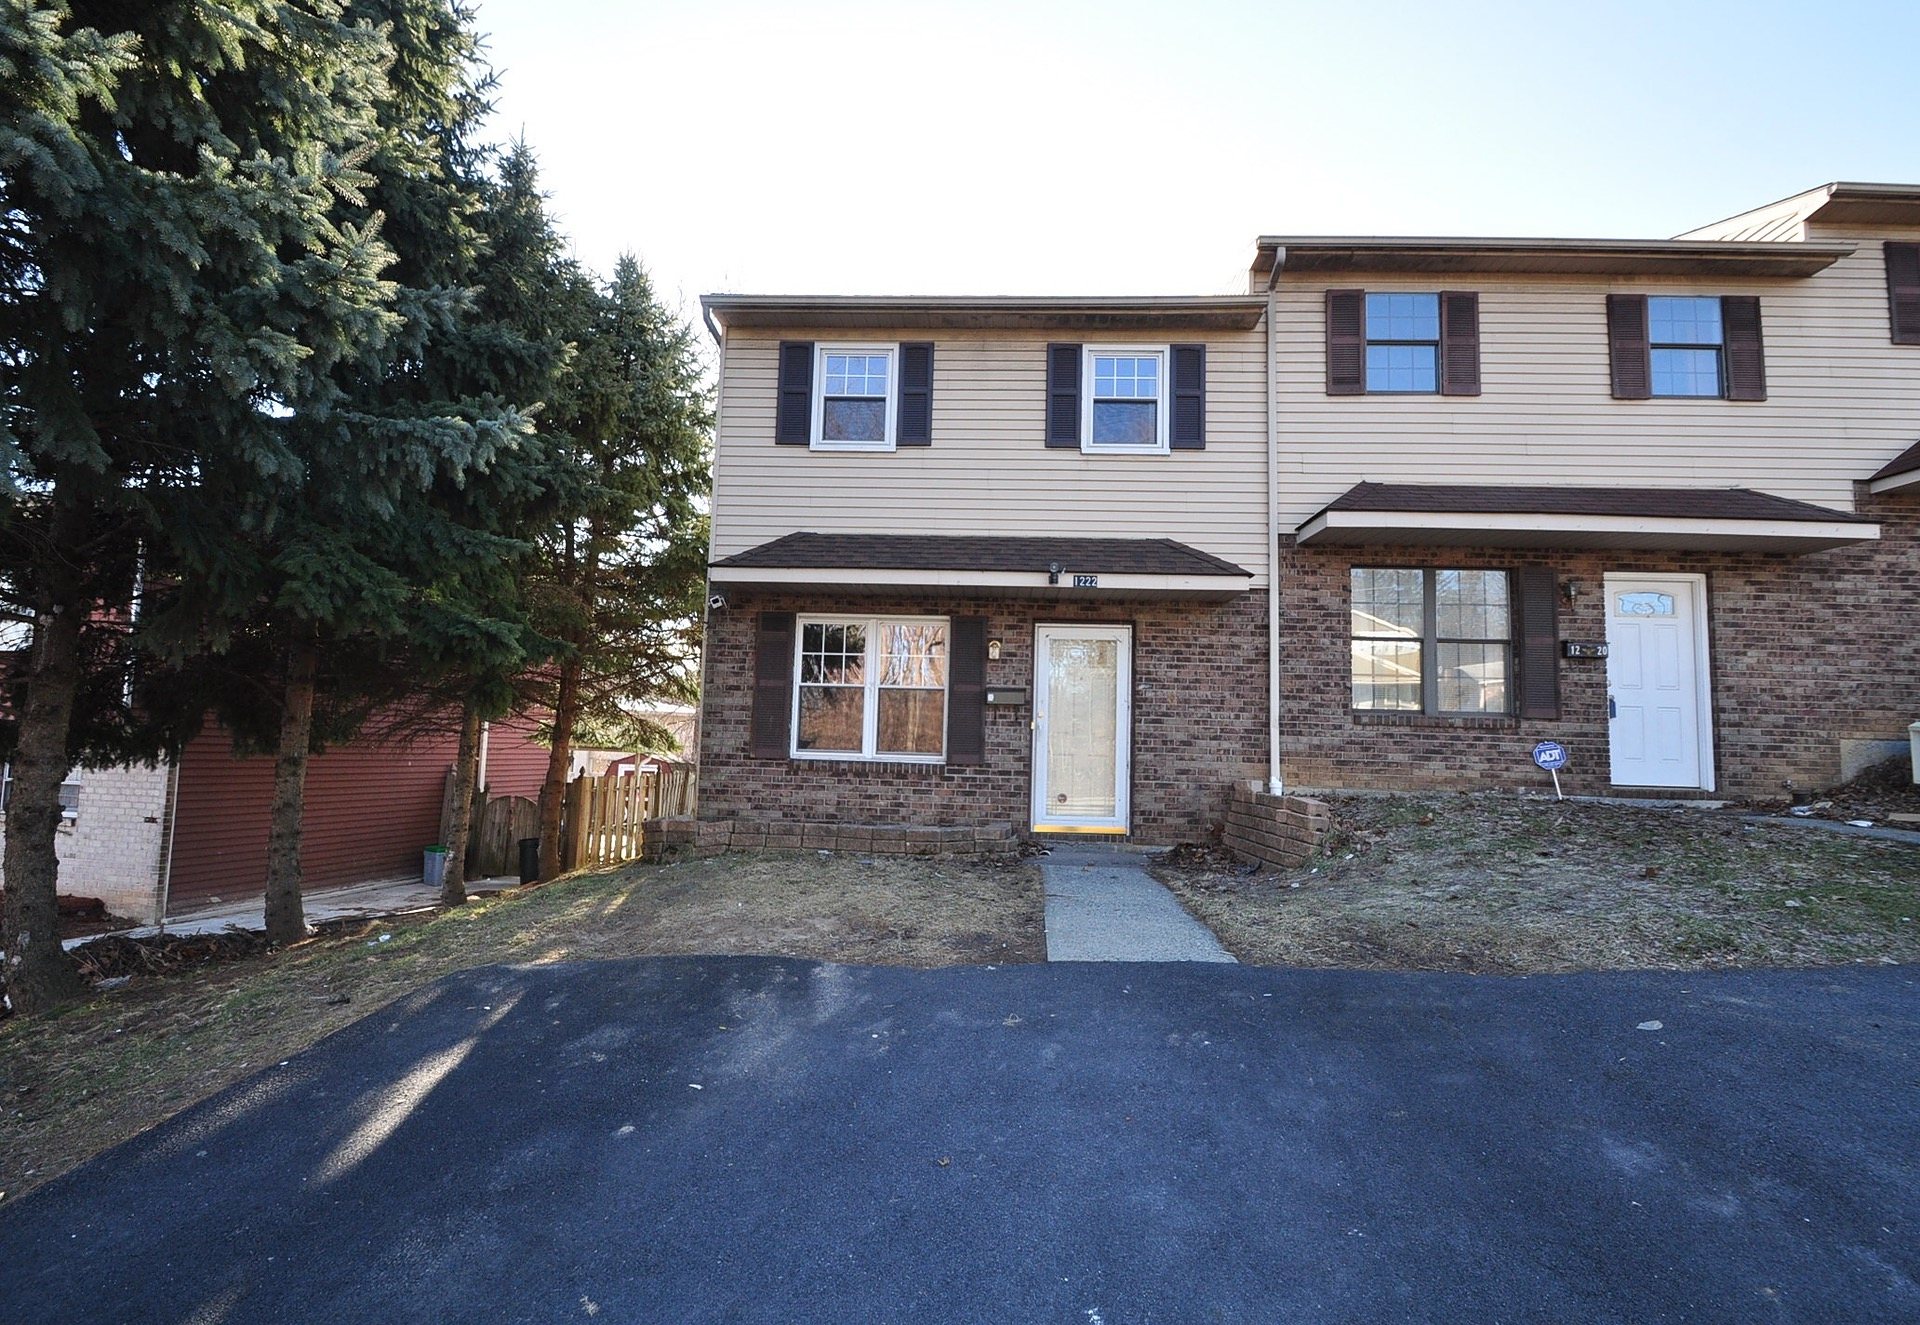 Allentown - 3 Beds 2 Baths $124,900